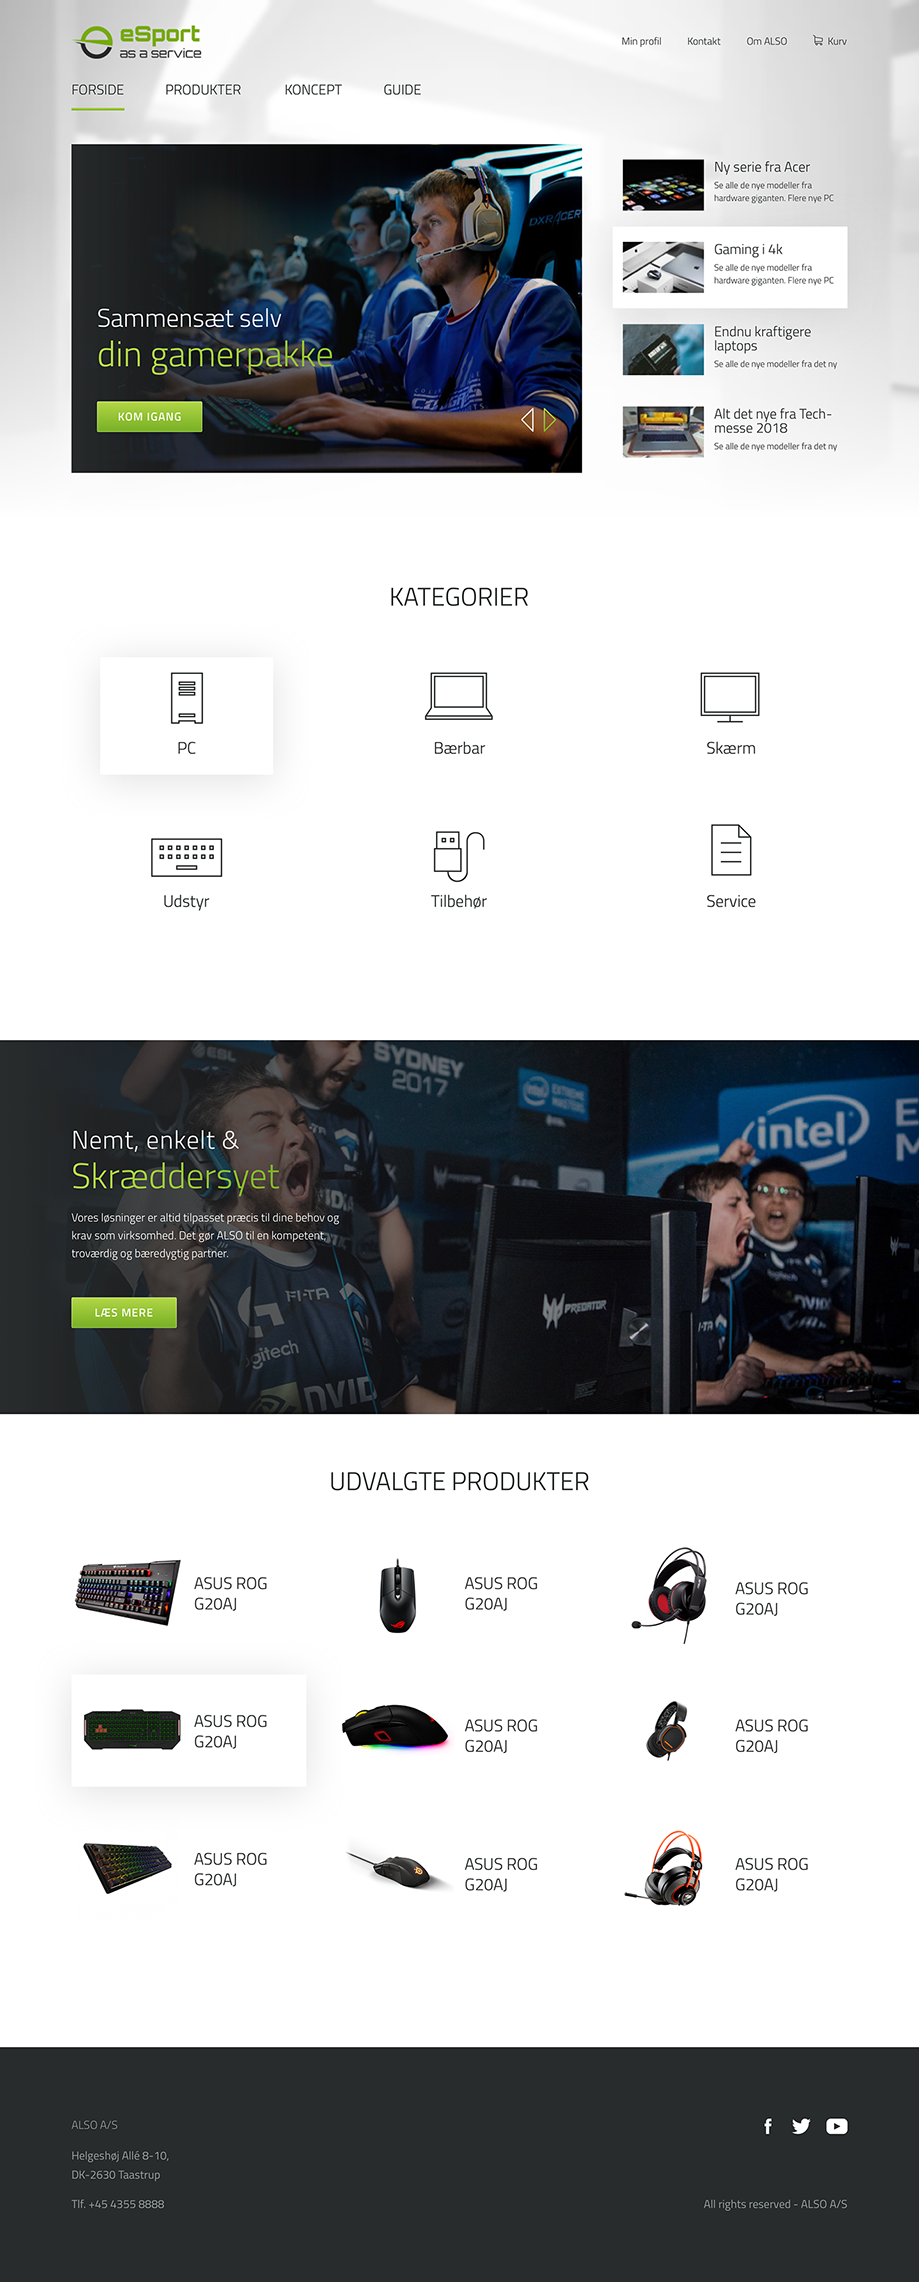 01 landing page459x1141_2x.png